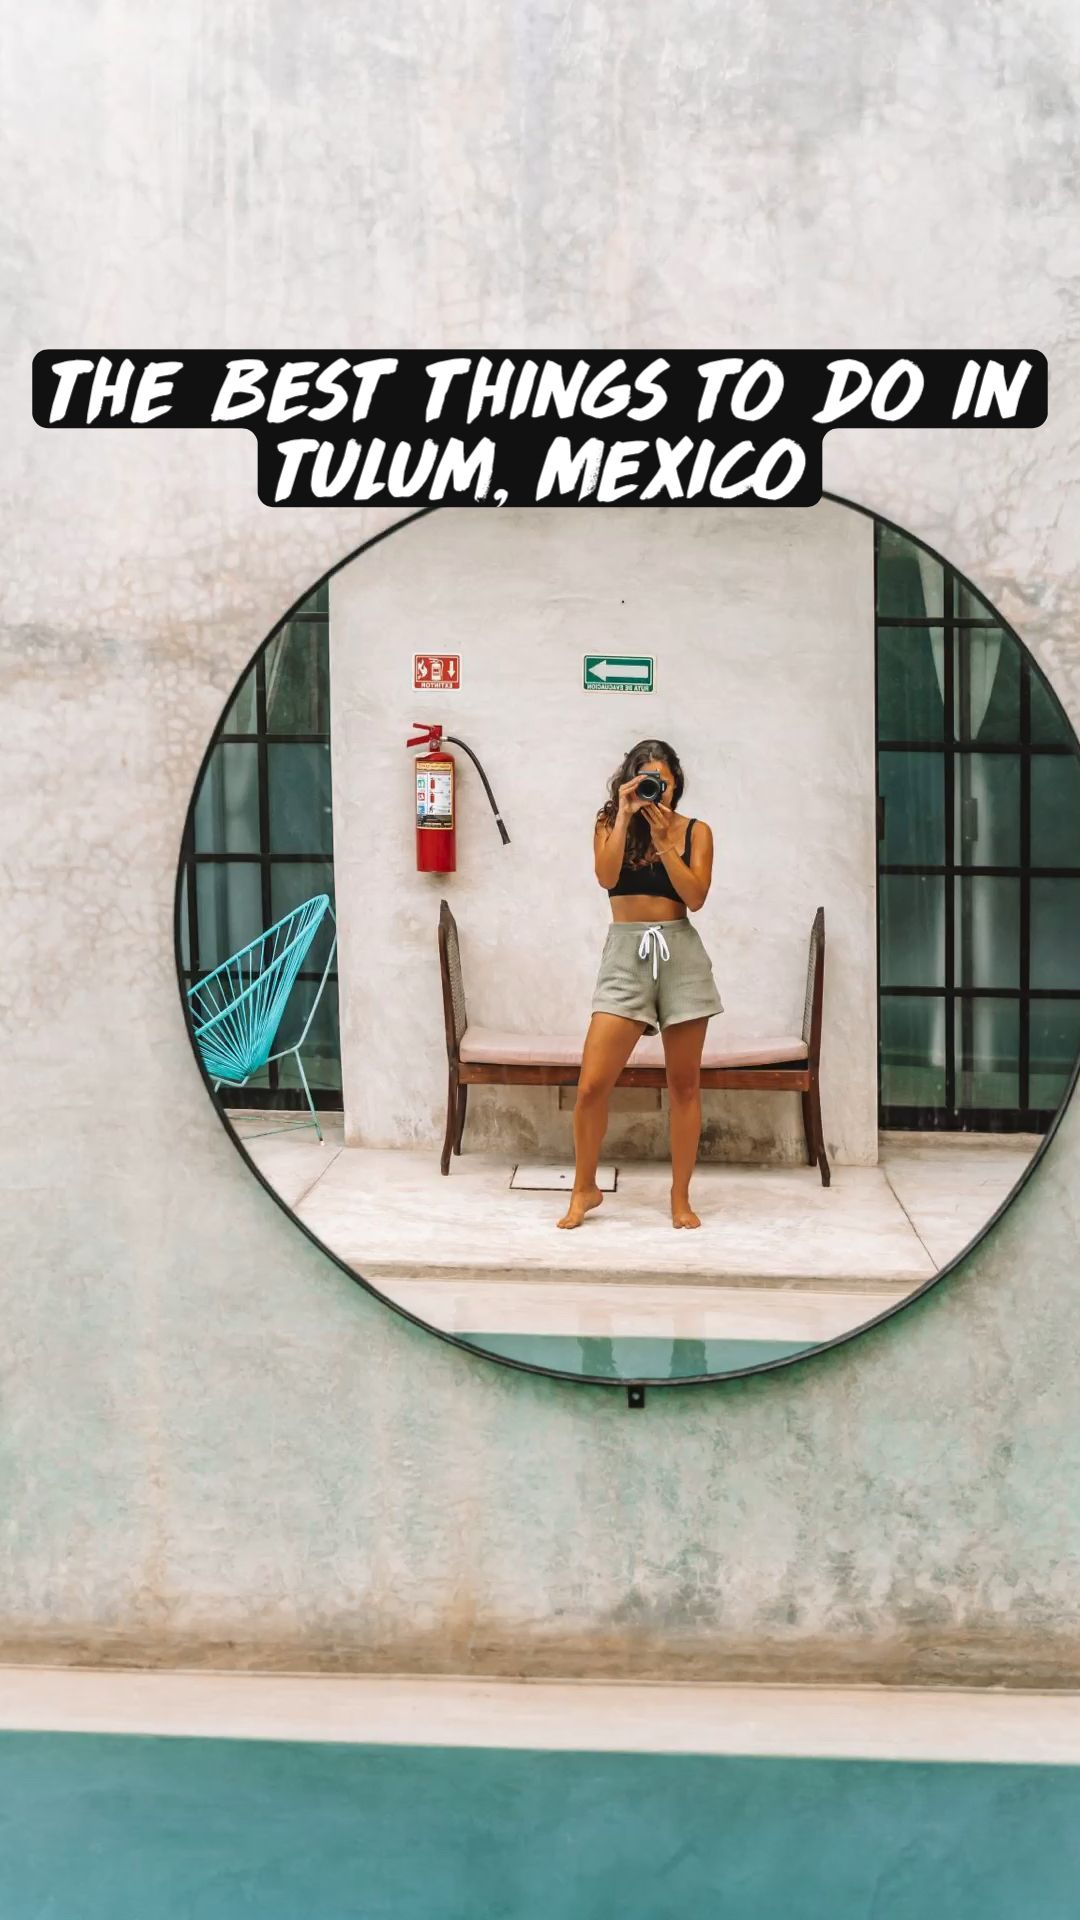 The Best Things To Do In Tulum, Mexico